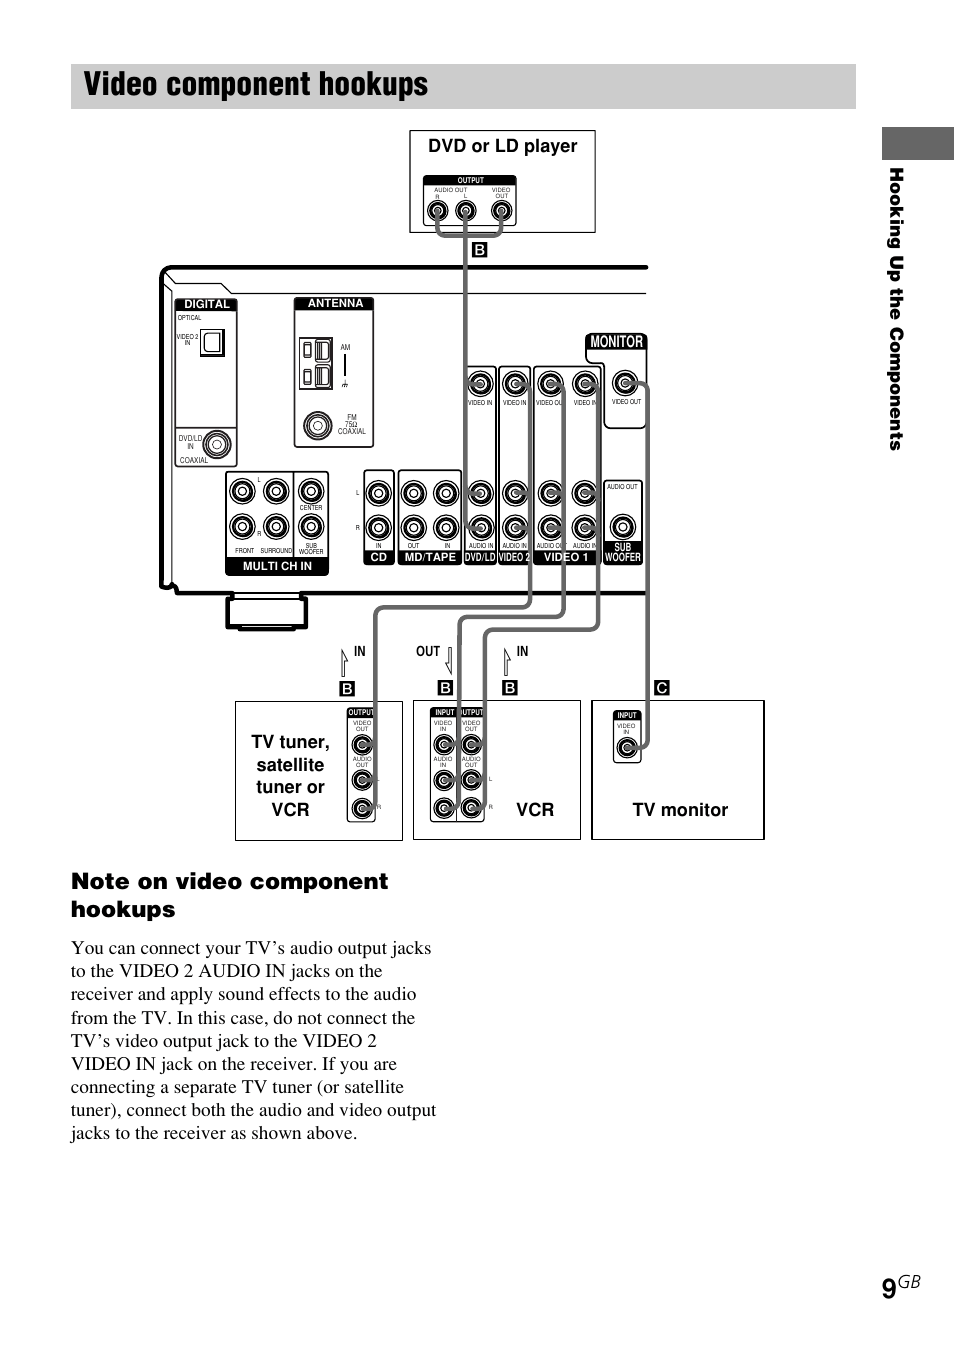 Video component hookups, Hooking up the components, Tv